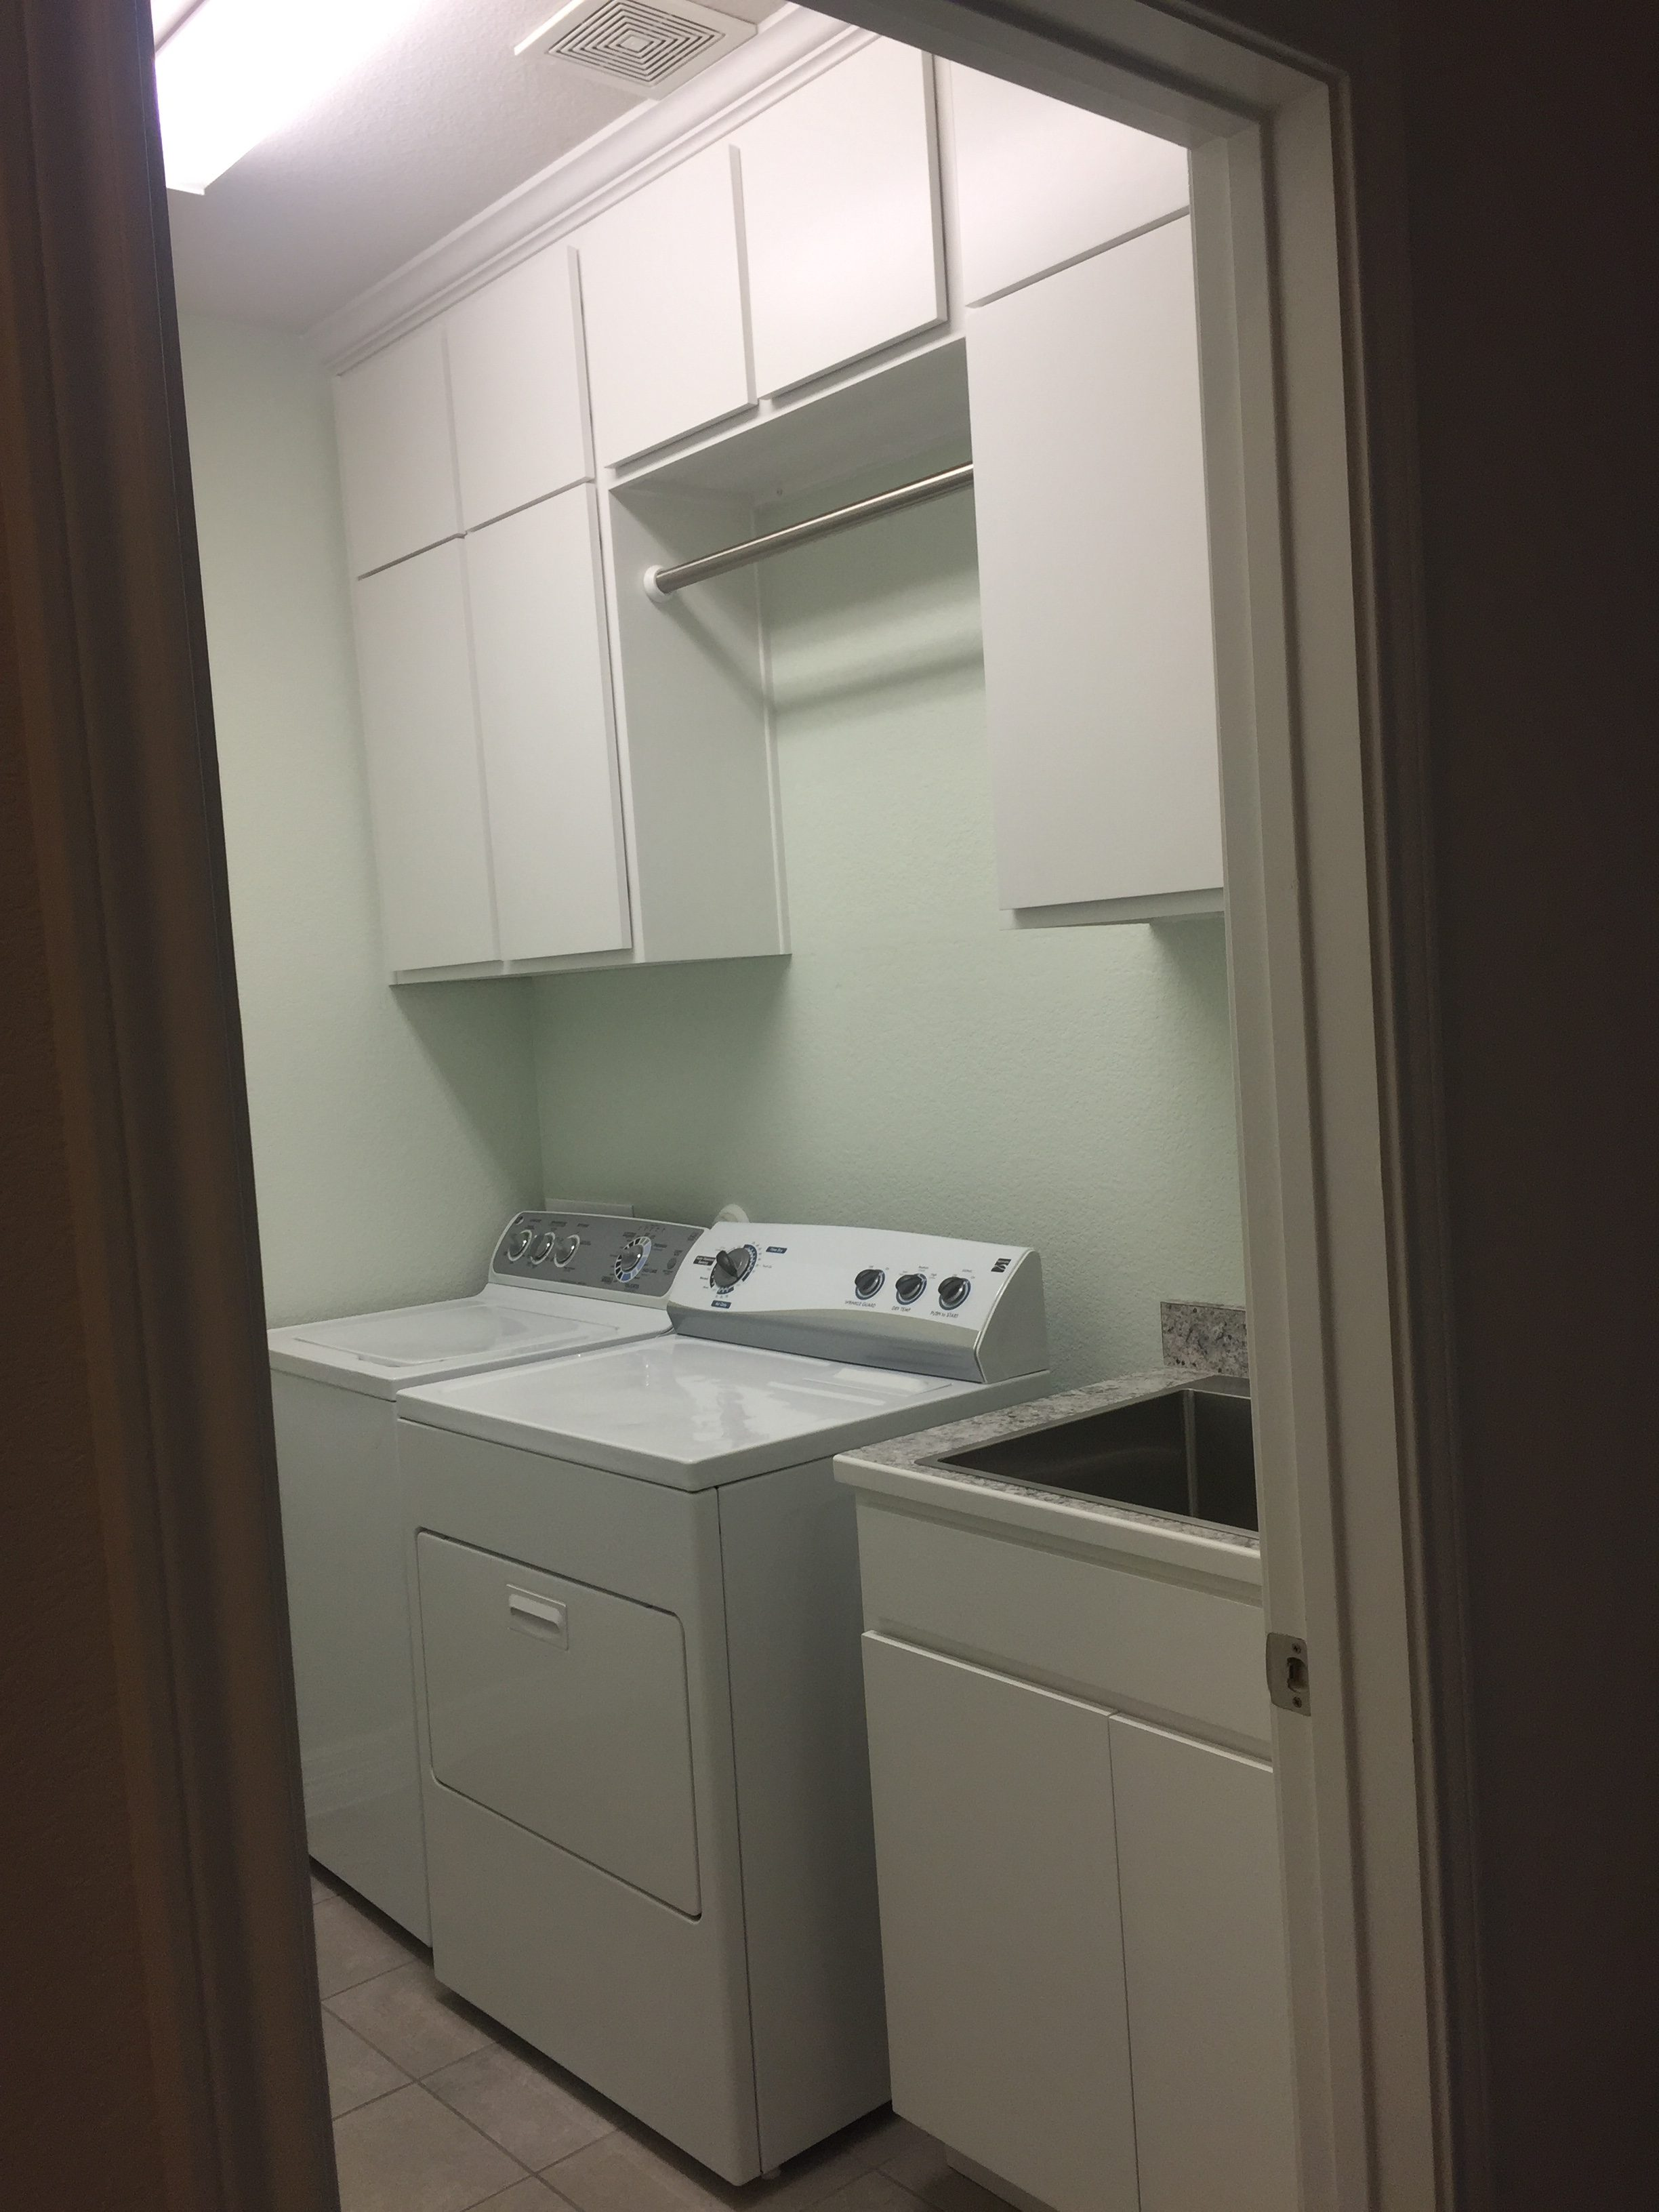 Photo of Laundry Room Cabinets